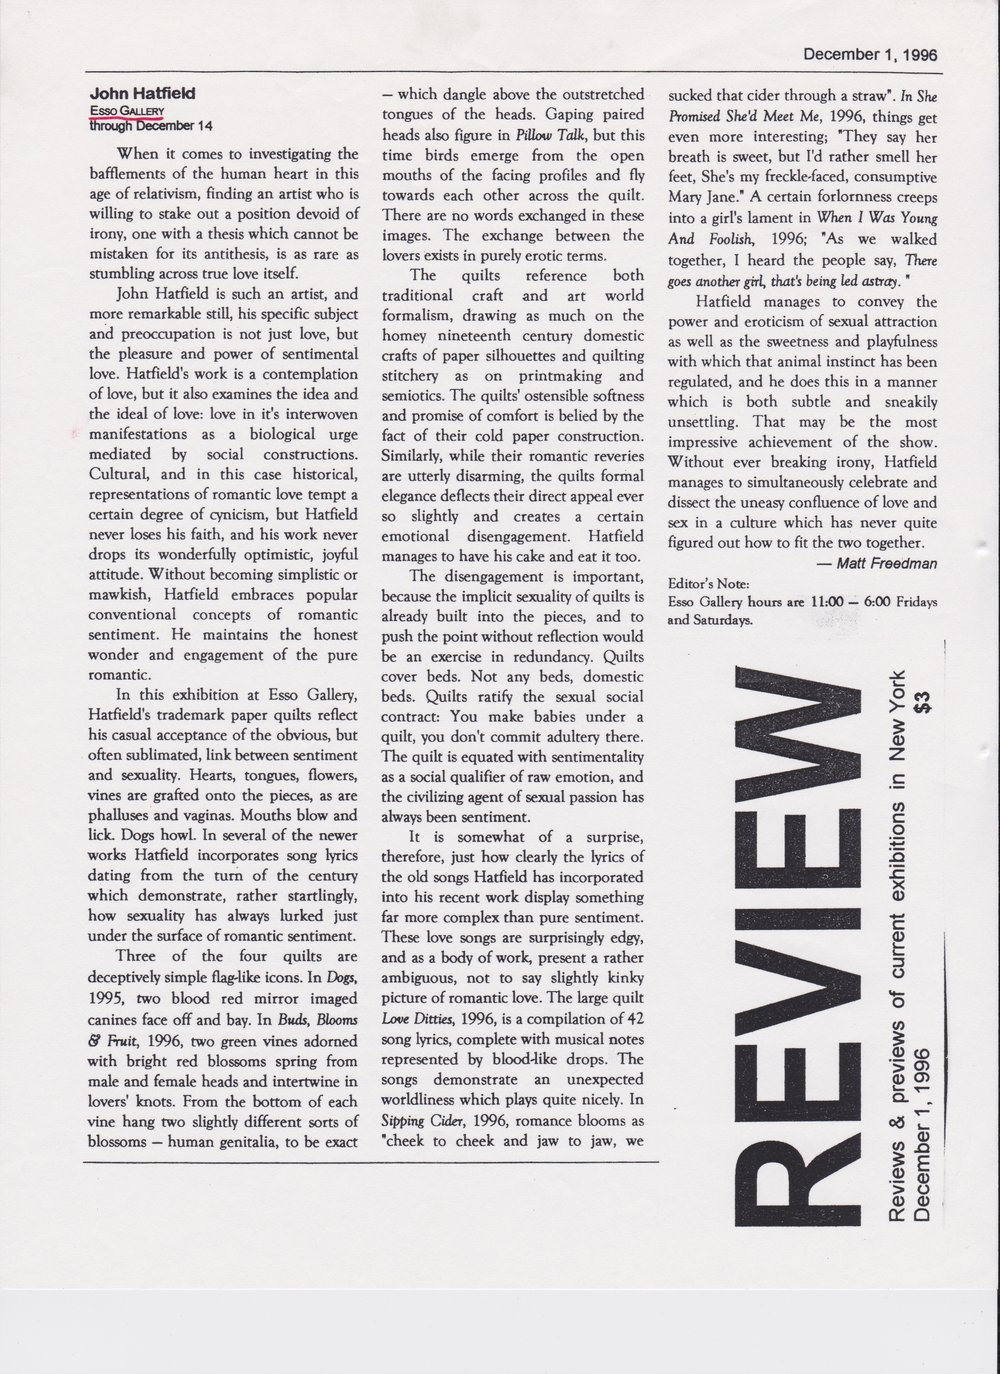 1996 12_01 Review Matt Freedman.jpeg